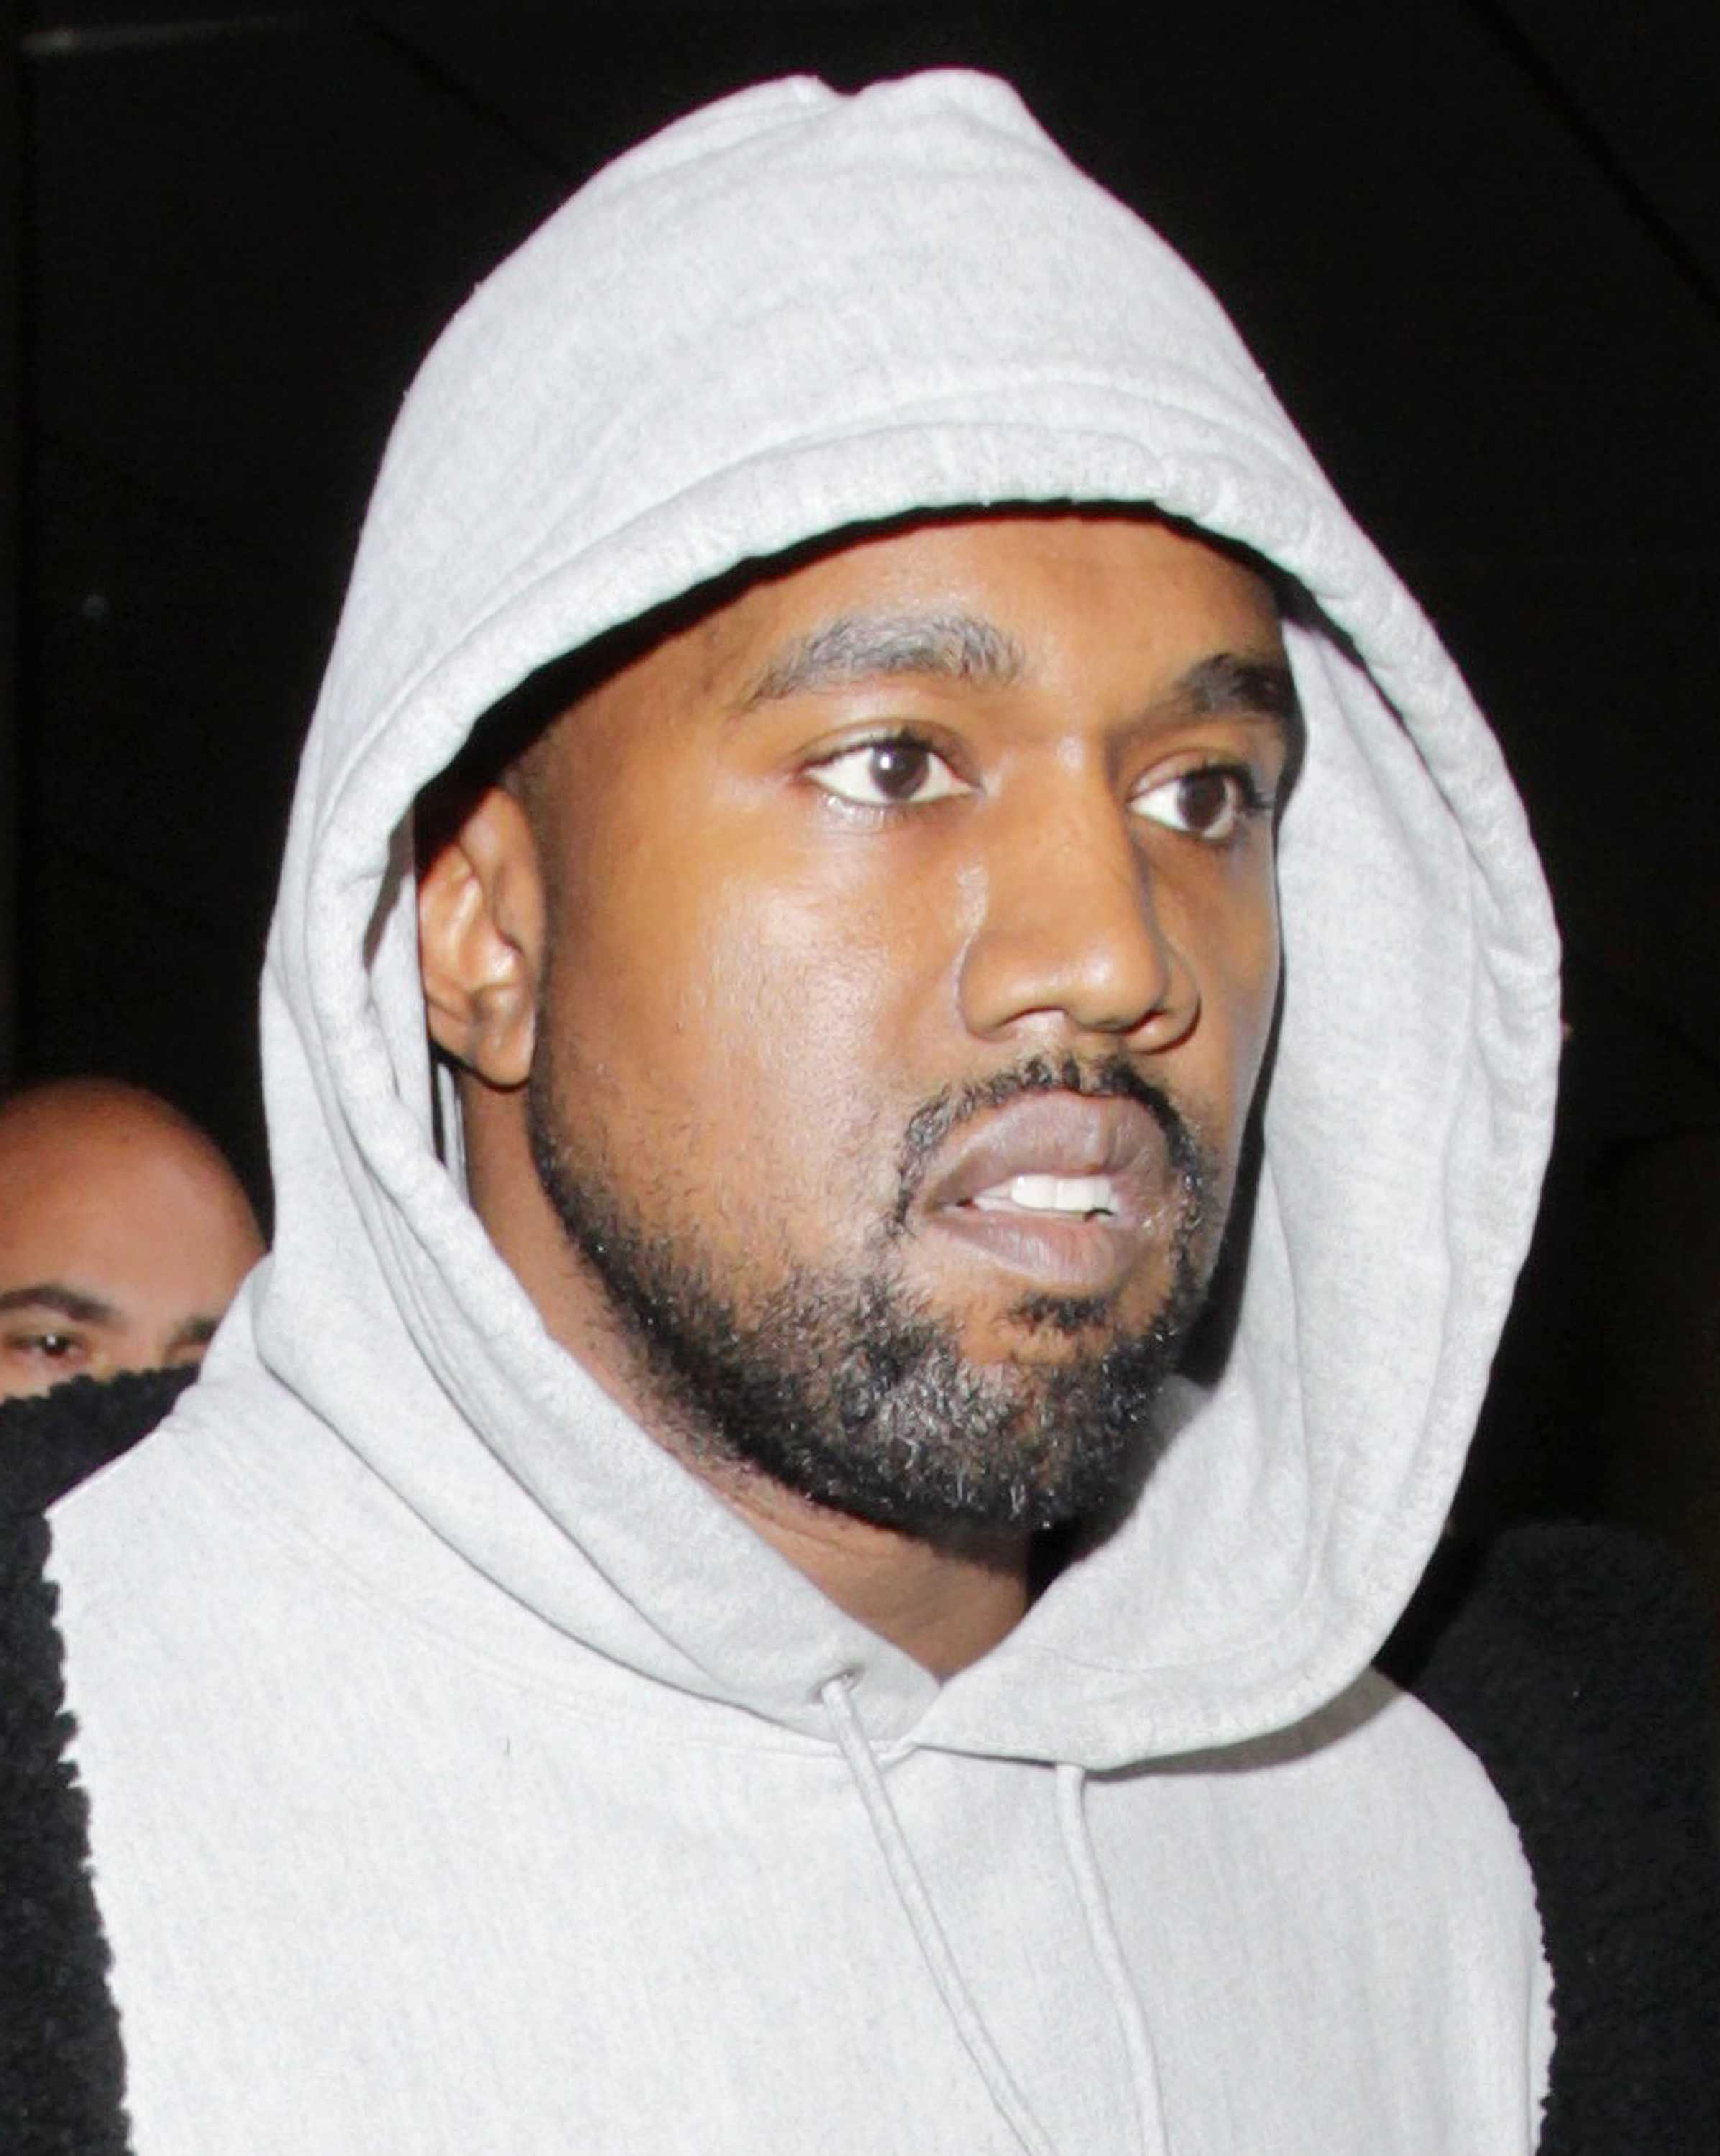 Kanye West arrives at the Los Angeles International Airport on Nov. 15, 2016 in Los Angeles. (Broadimage/Rex Shutterstock/Zuma Press/TNS)